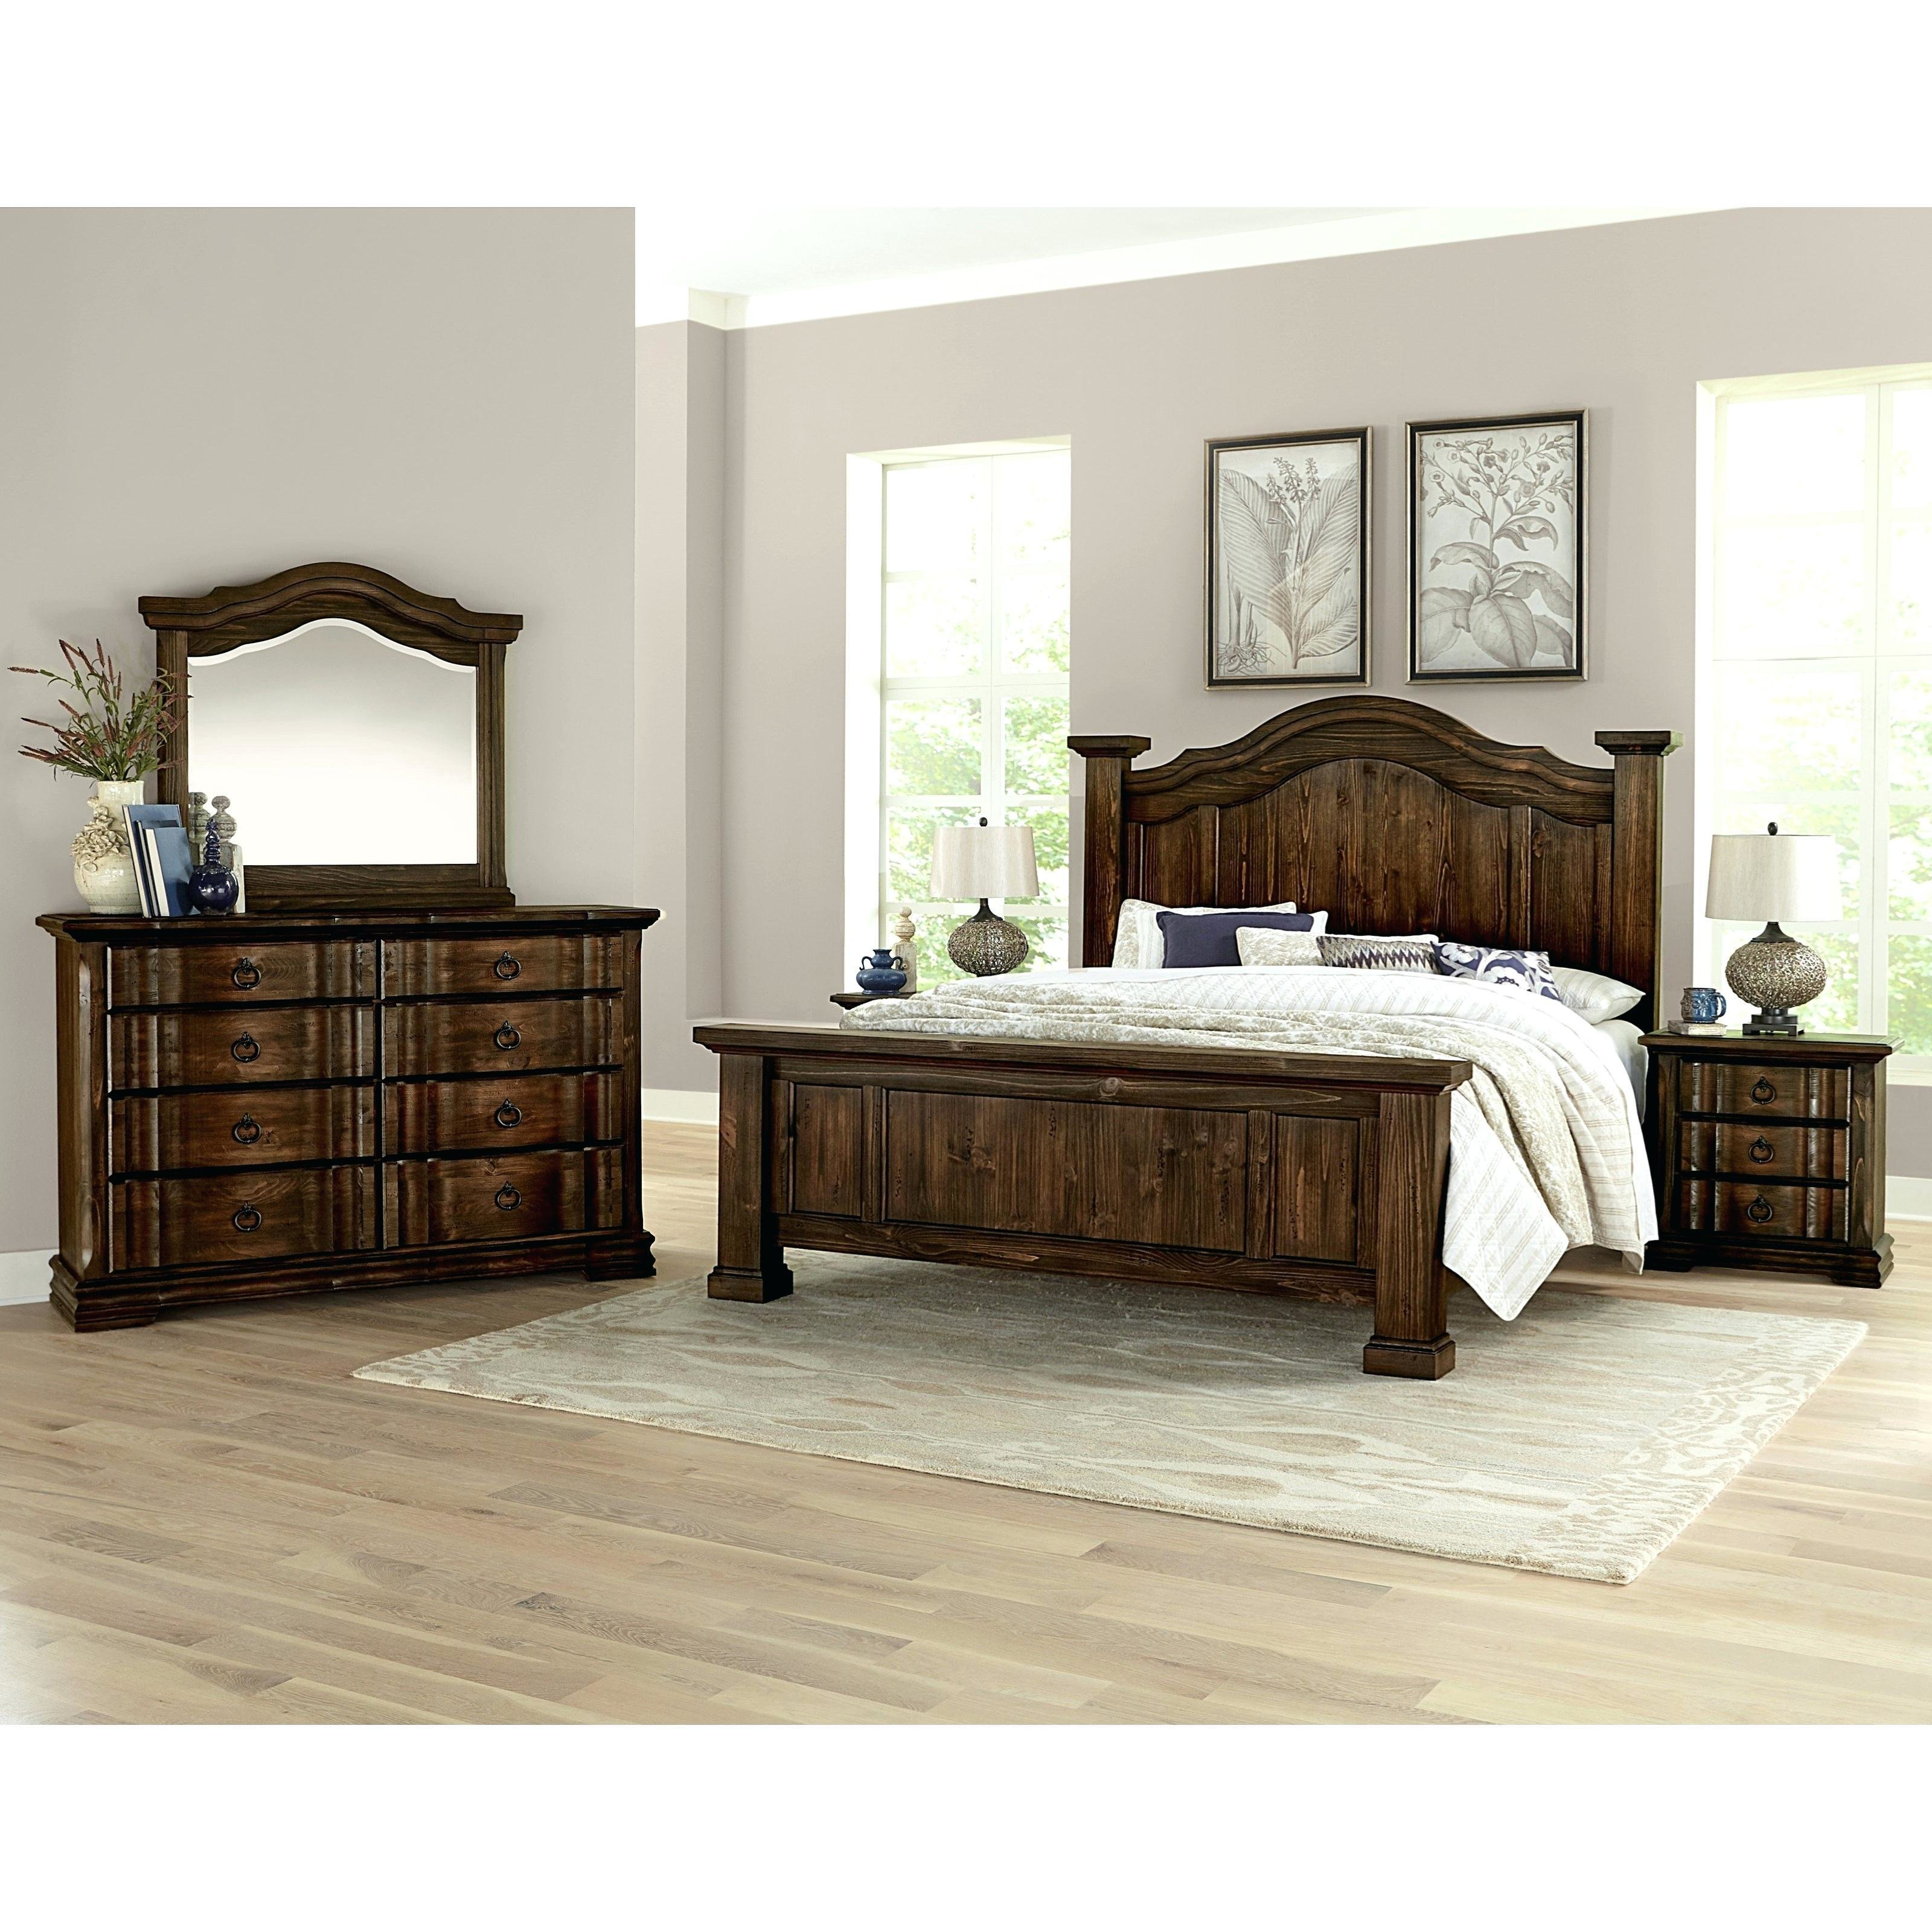 Best Vaughan Bassett Furniture Vaughan Bassett Furniture Prices With Pictures